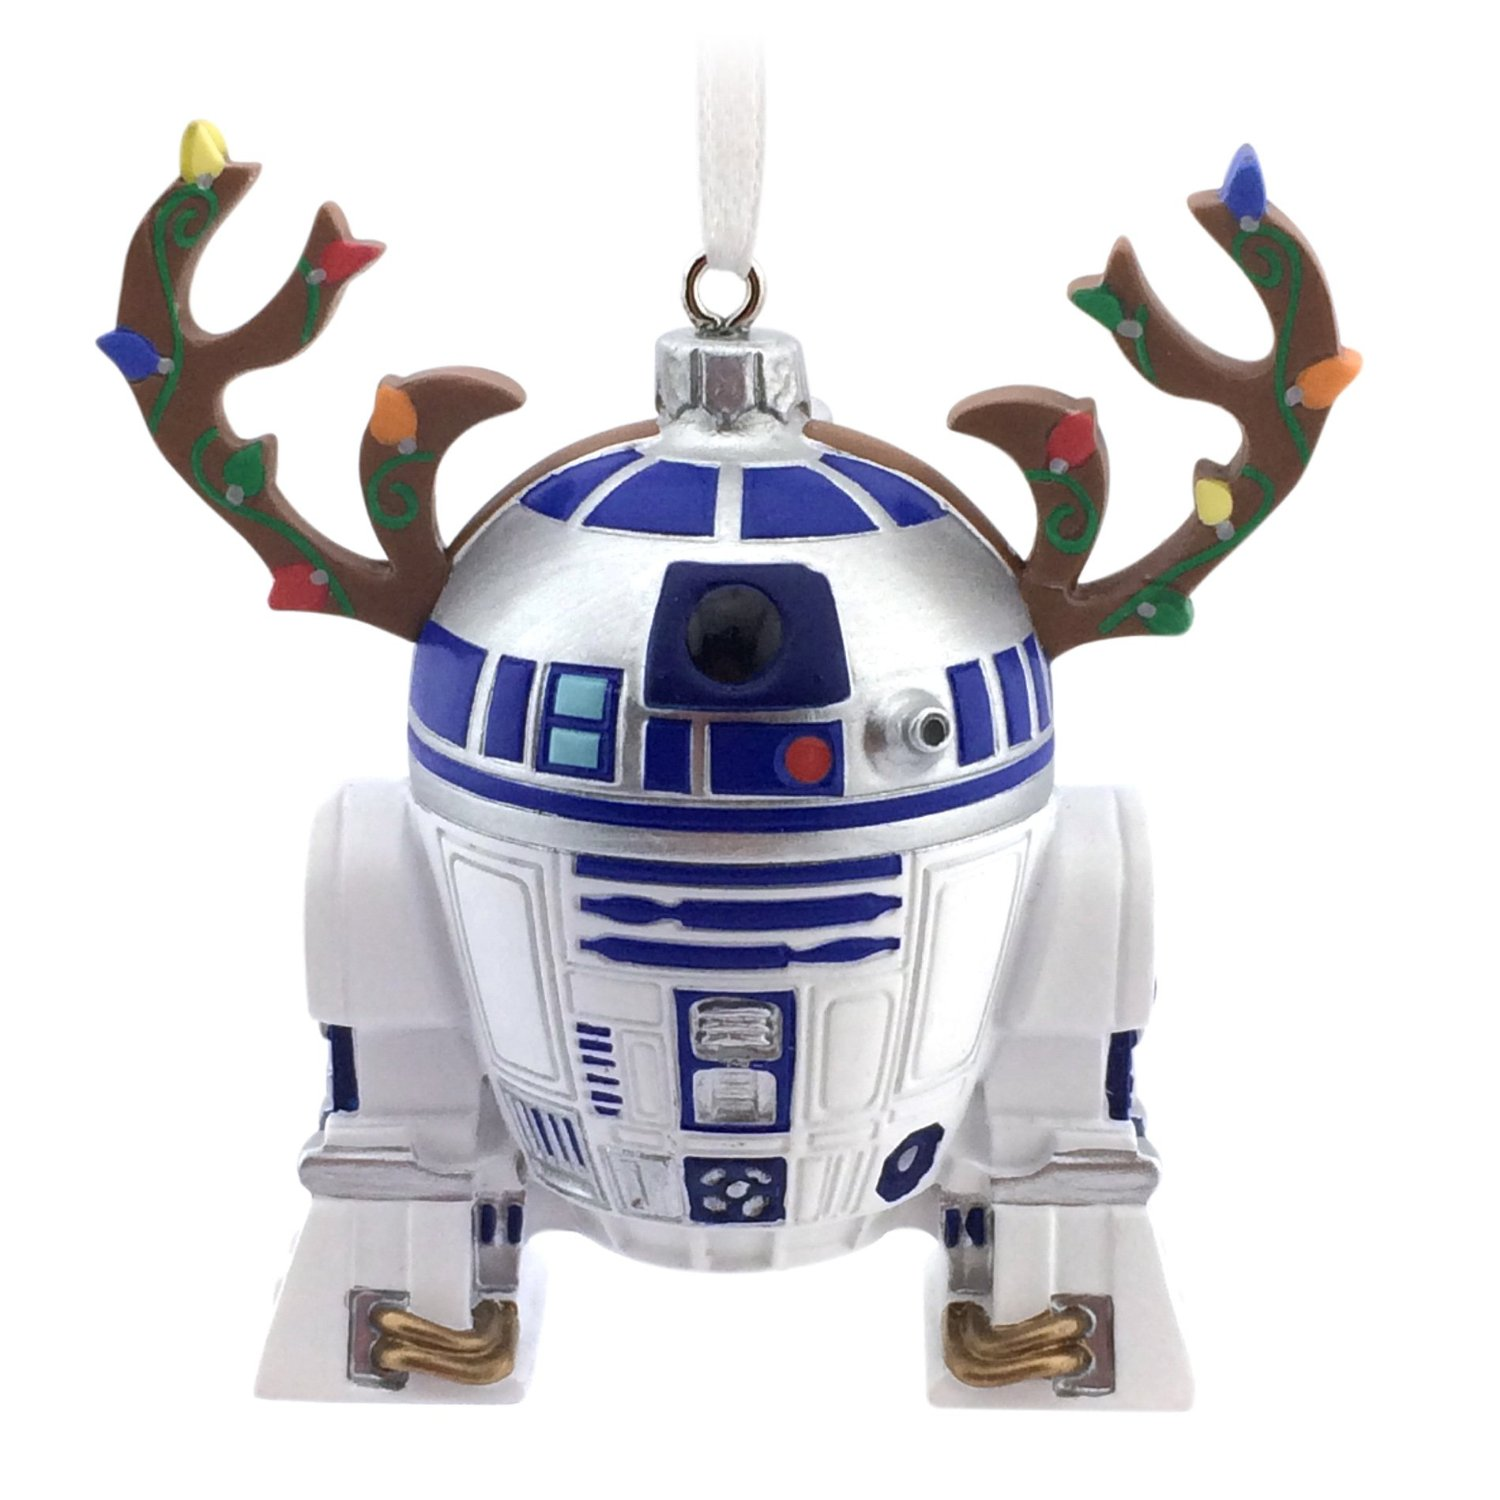 Star Wars R2D2 Ornament